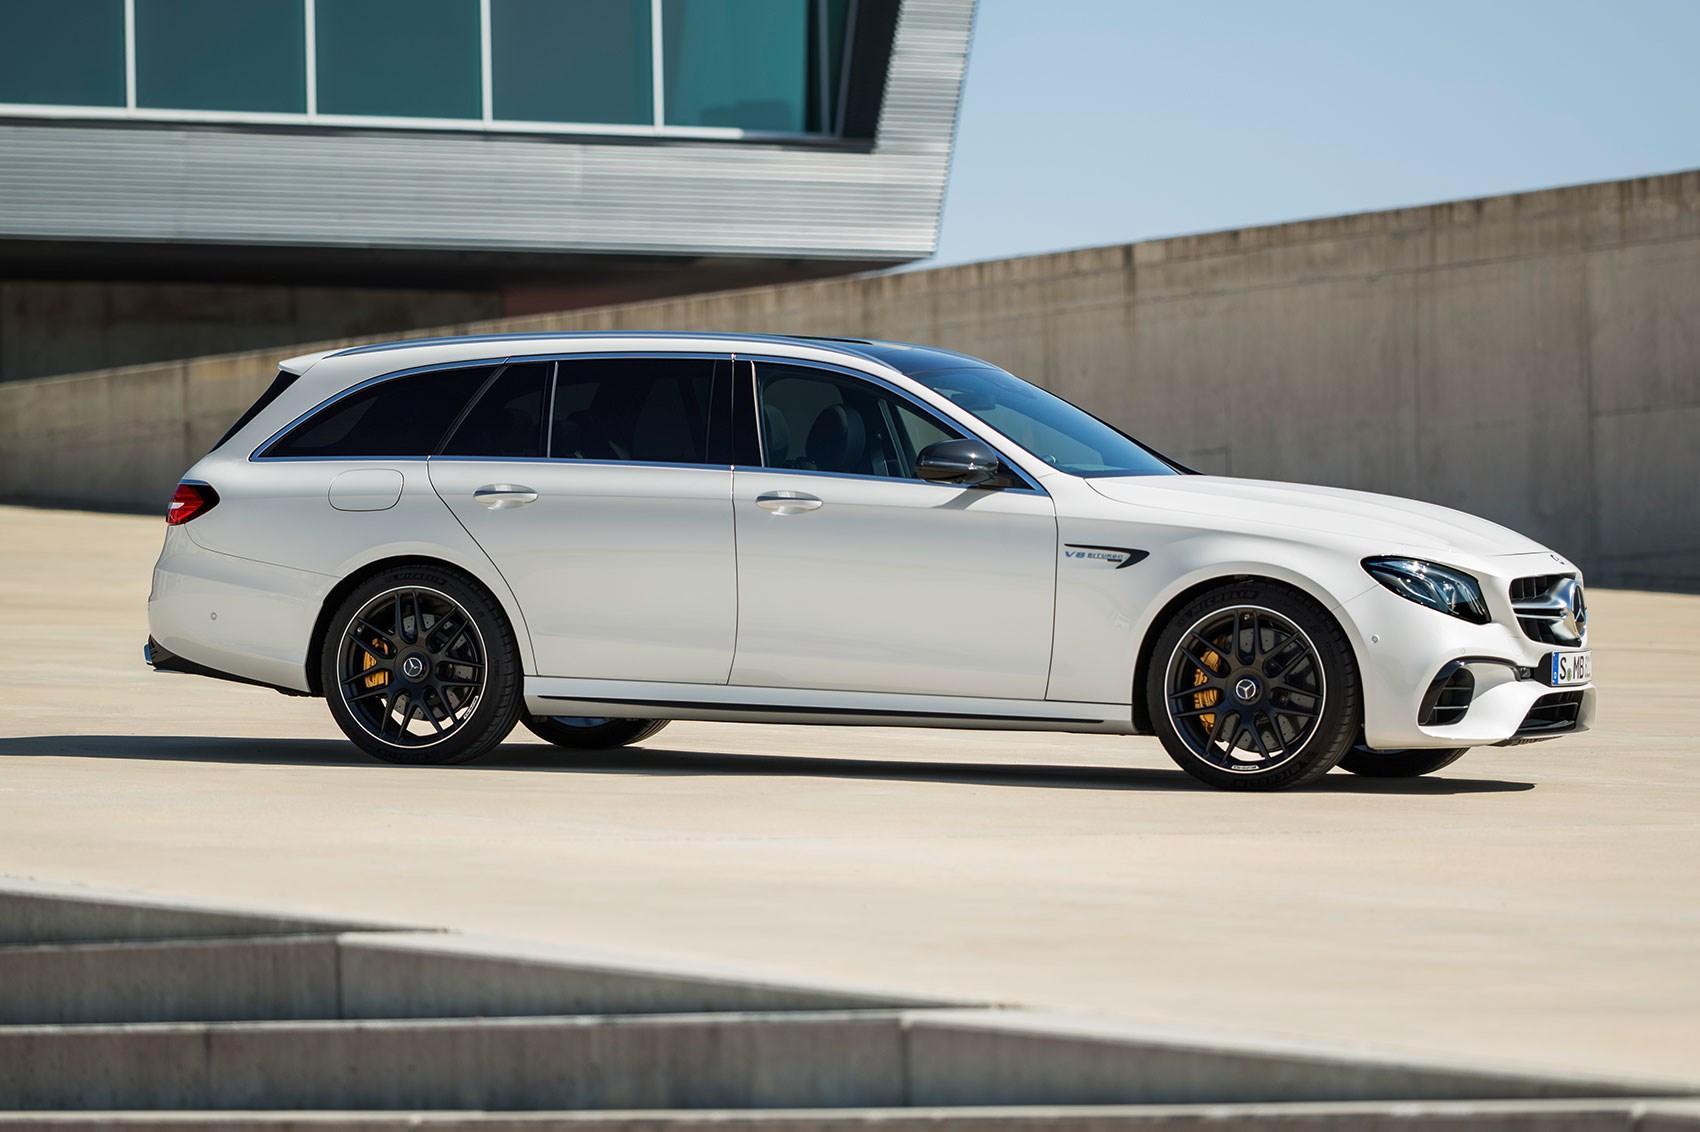 mercedes amg e63 4matic estate prices revealed for 2017. Black Bedroom Furniture Sets. Home Design Ideas